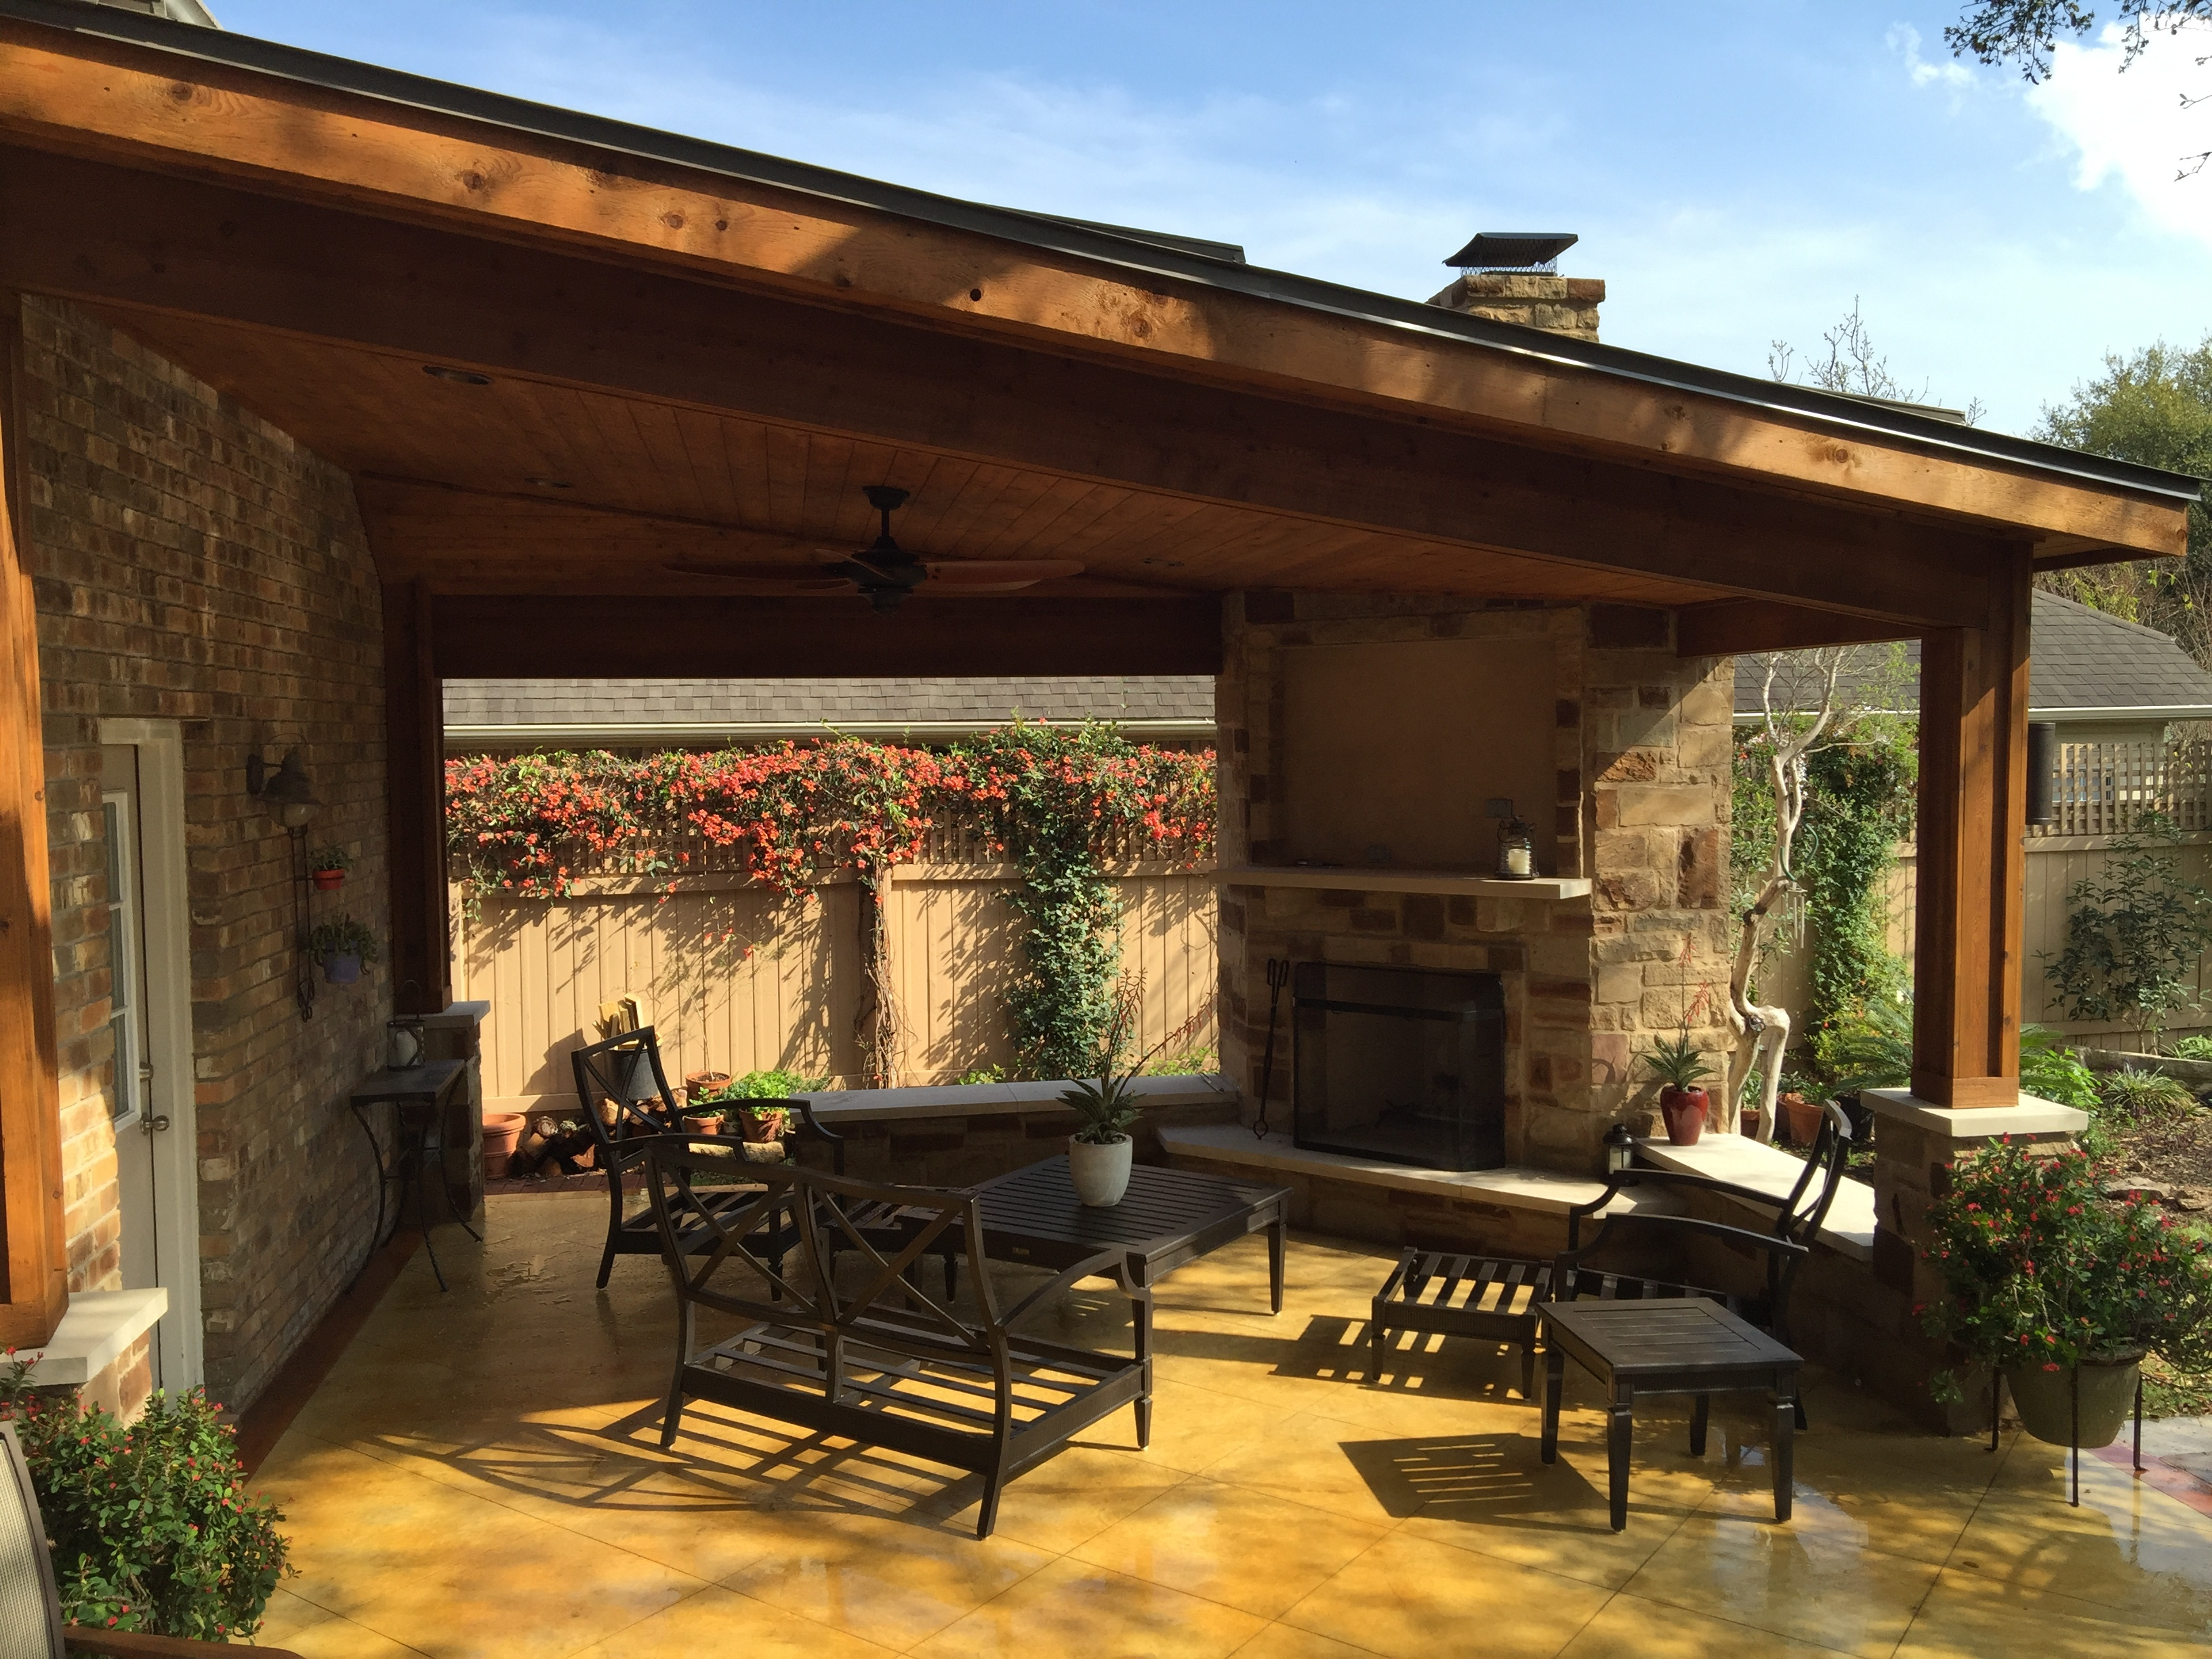 Covered Patios | Austin Decks, Pergolas, Covered Patios ... on Small Outdoor Covered Patio Ideas id=69923